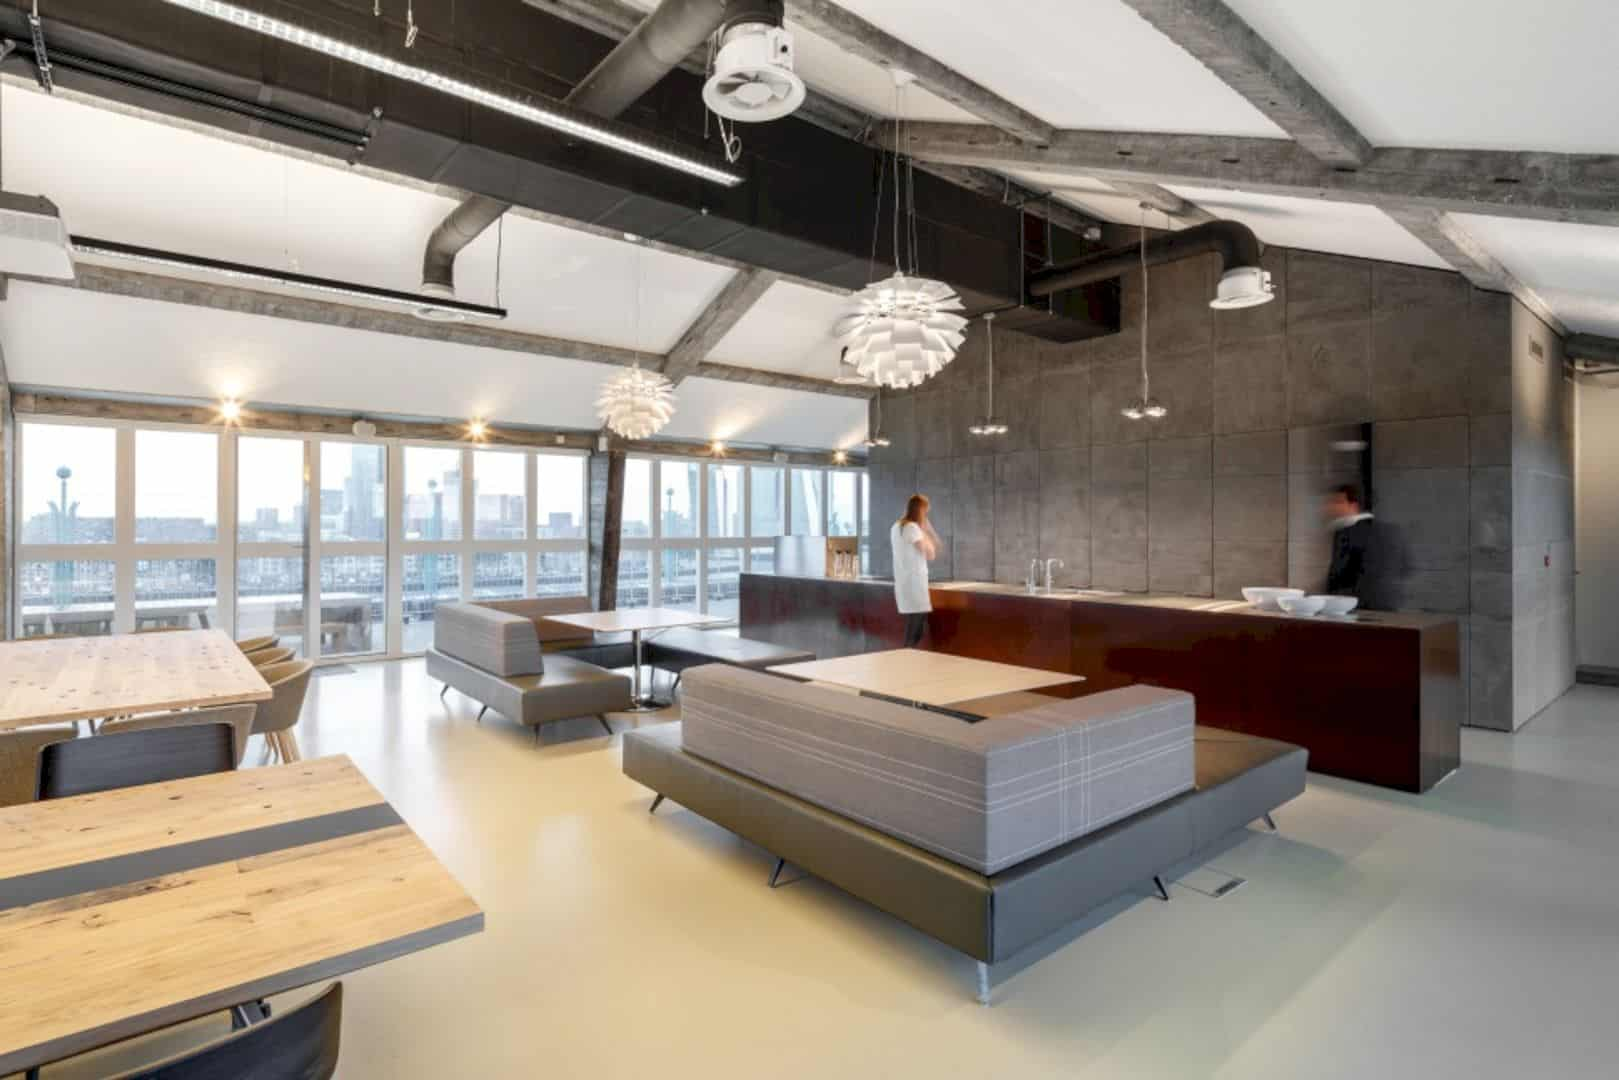 OC&C Strategy Consultants: A Comfortable, Industrial New Office with Spectacular Views